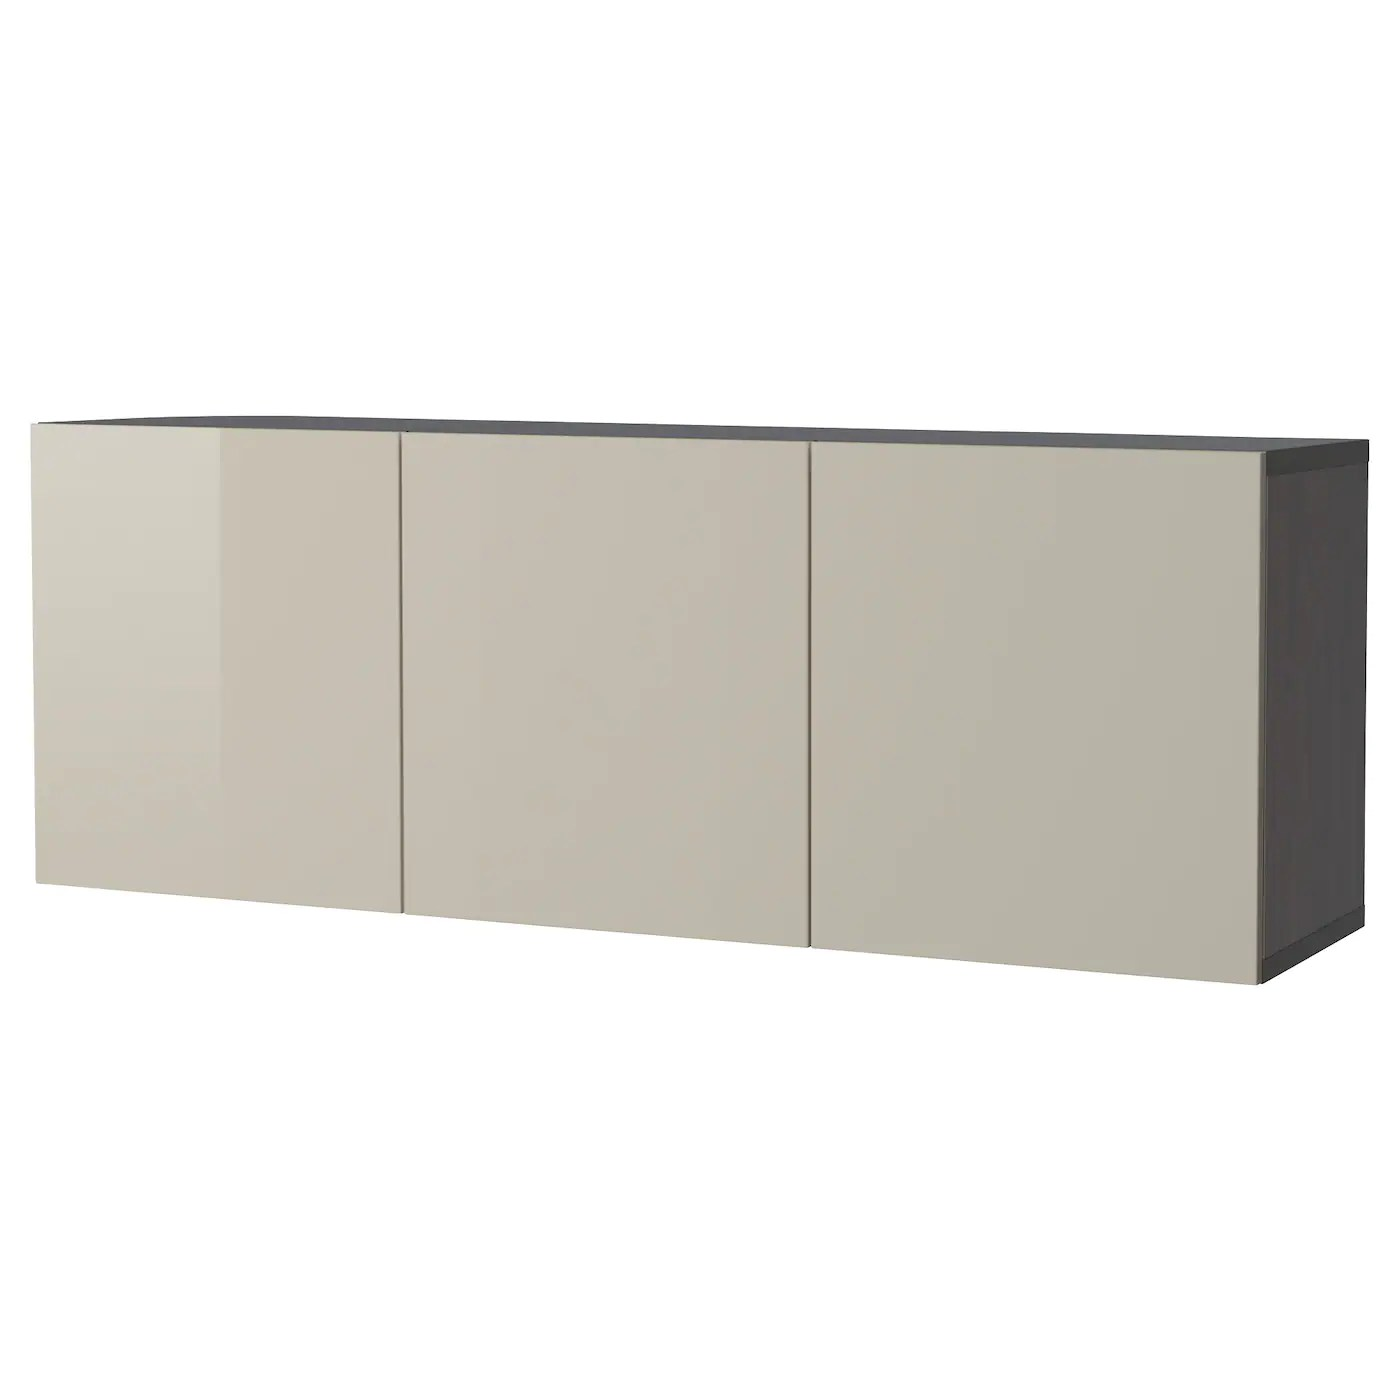 Besta Black Brown Selsviken High Gloss Beige Wall Mounted Cabinet Combination 180x42x64 Cm Ikea